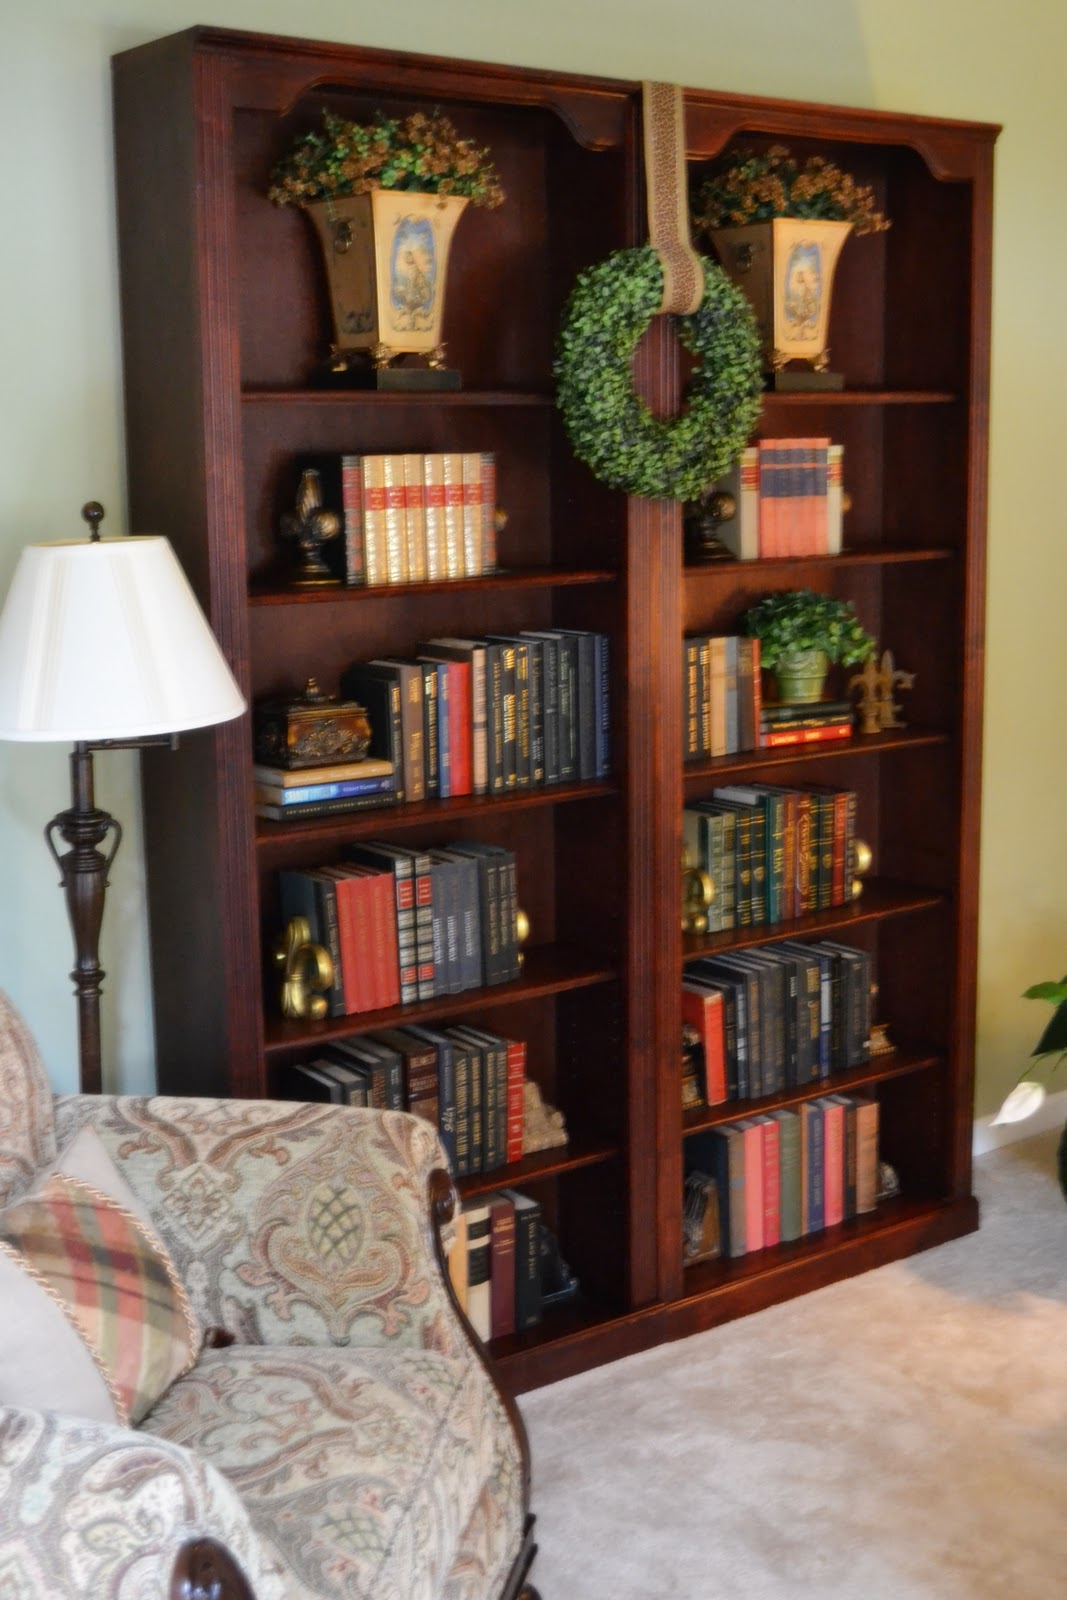 Living Room With Bookshelf: ReStyling The Living Room Bookcases